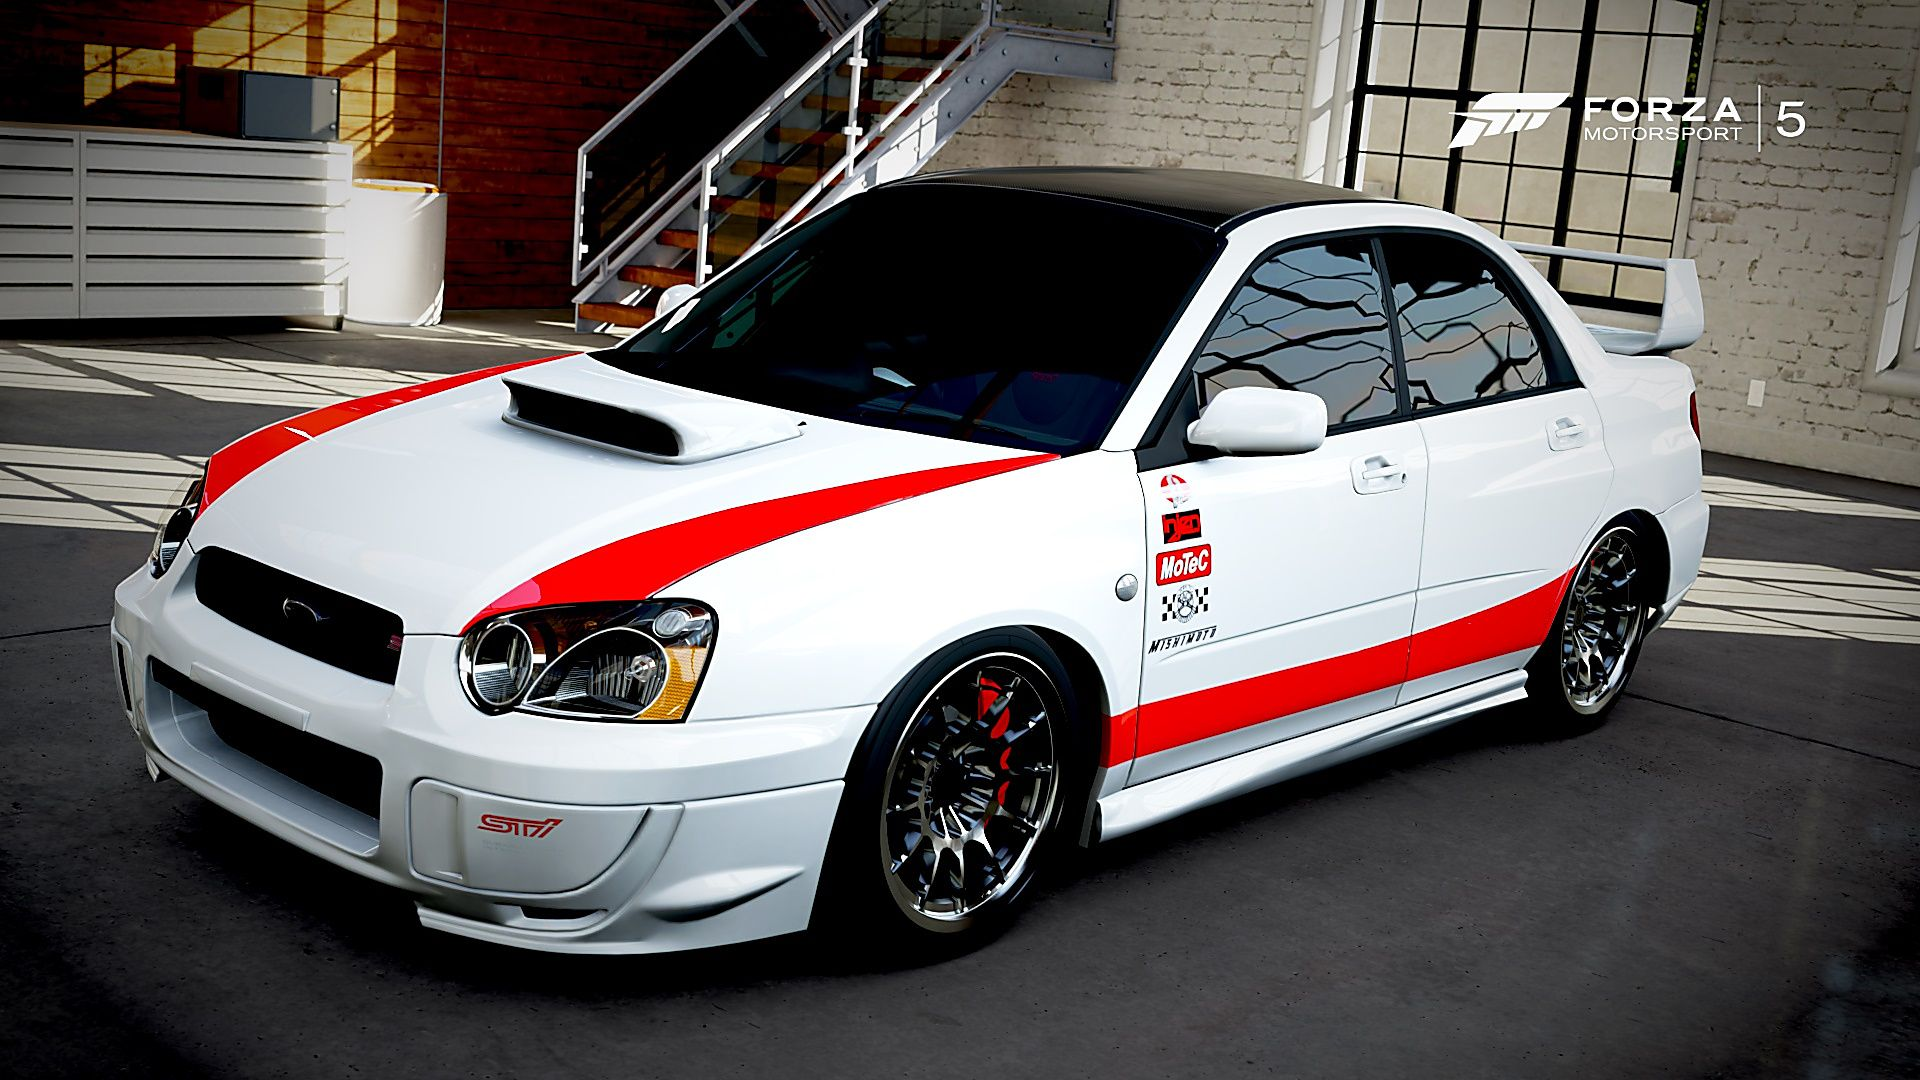 Born To Race Subaru Wrx Cars From The Movies Tv Pinterest